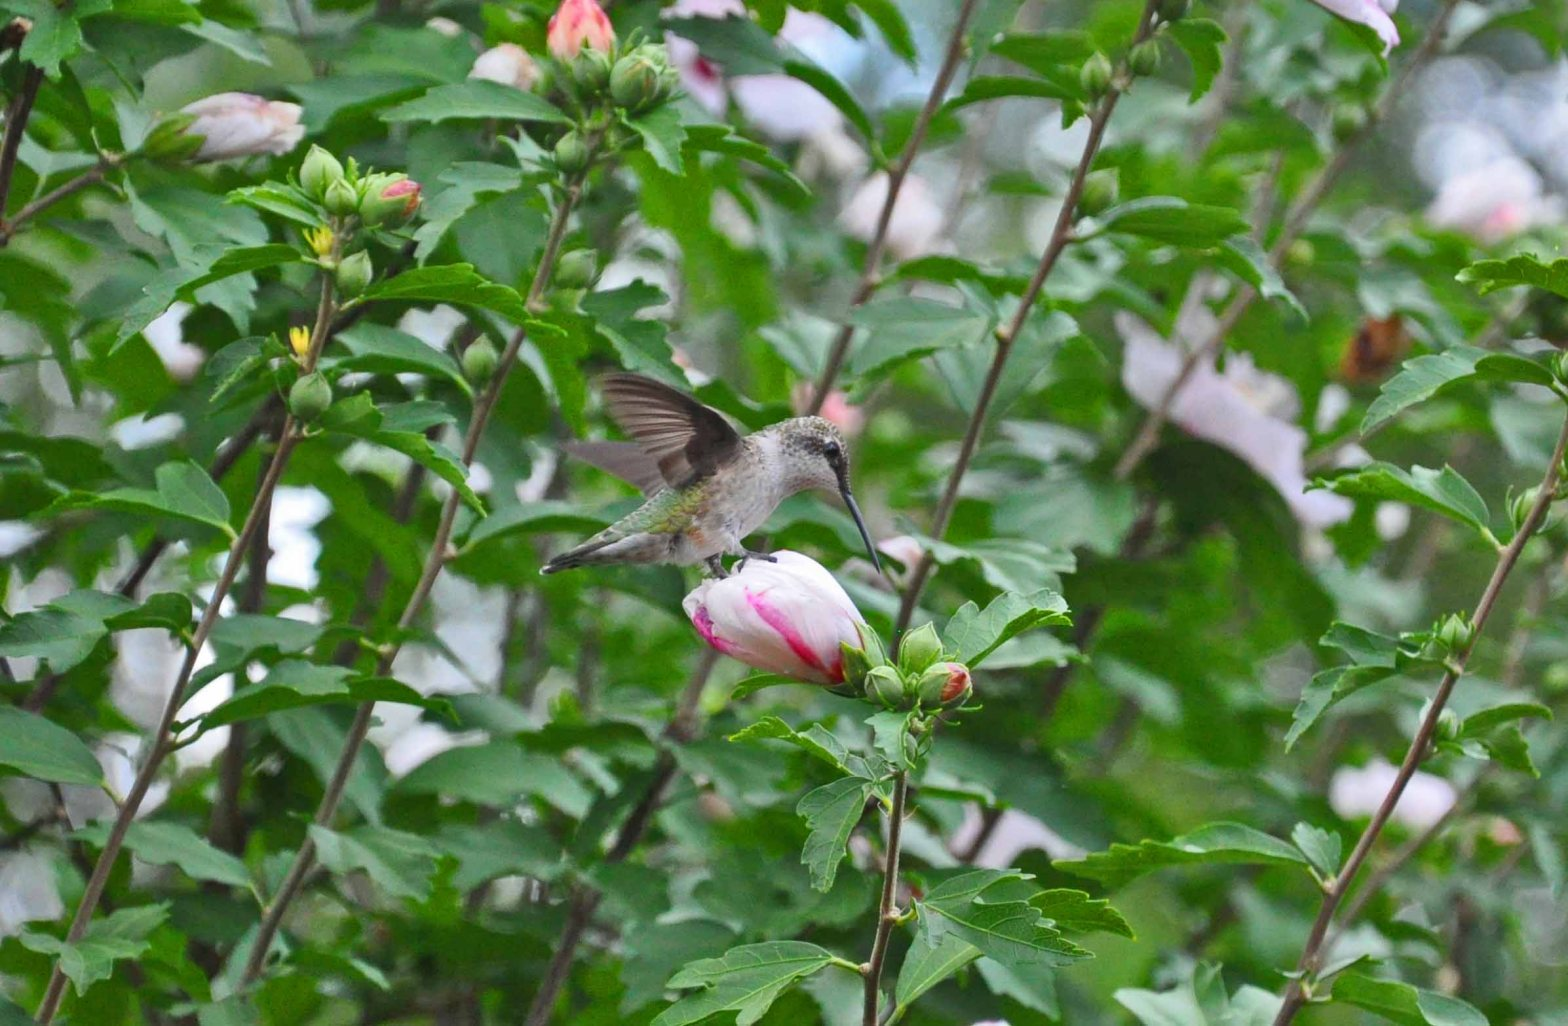 A Hummingbird in our Cincinnati yard on Moving Day